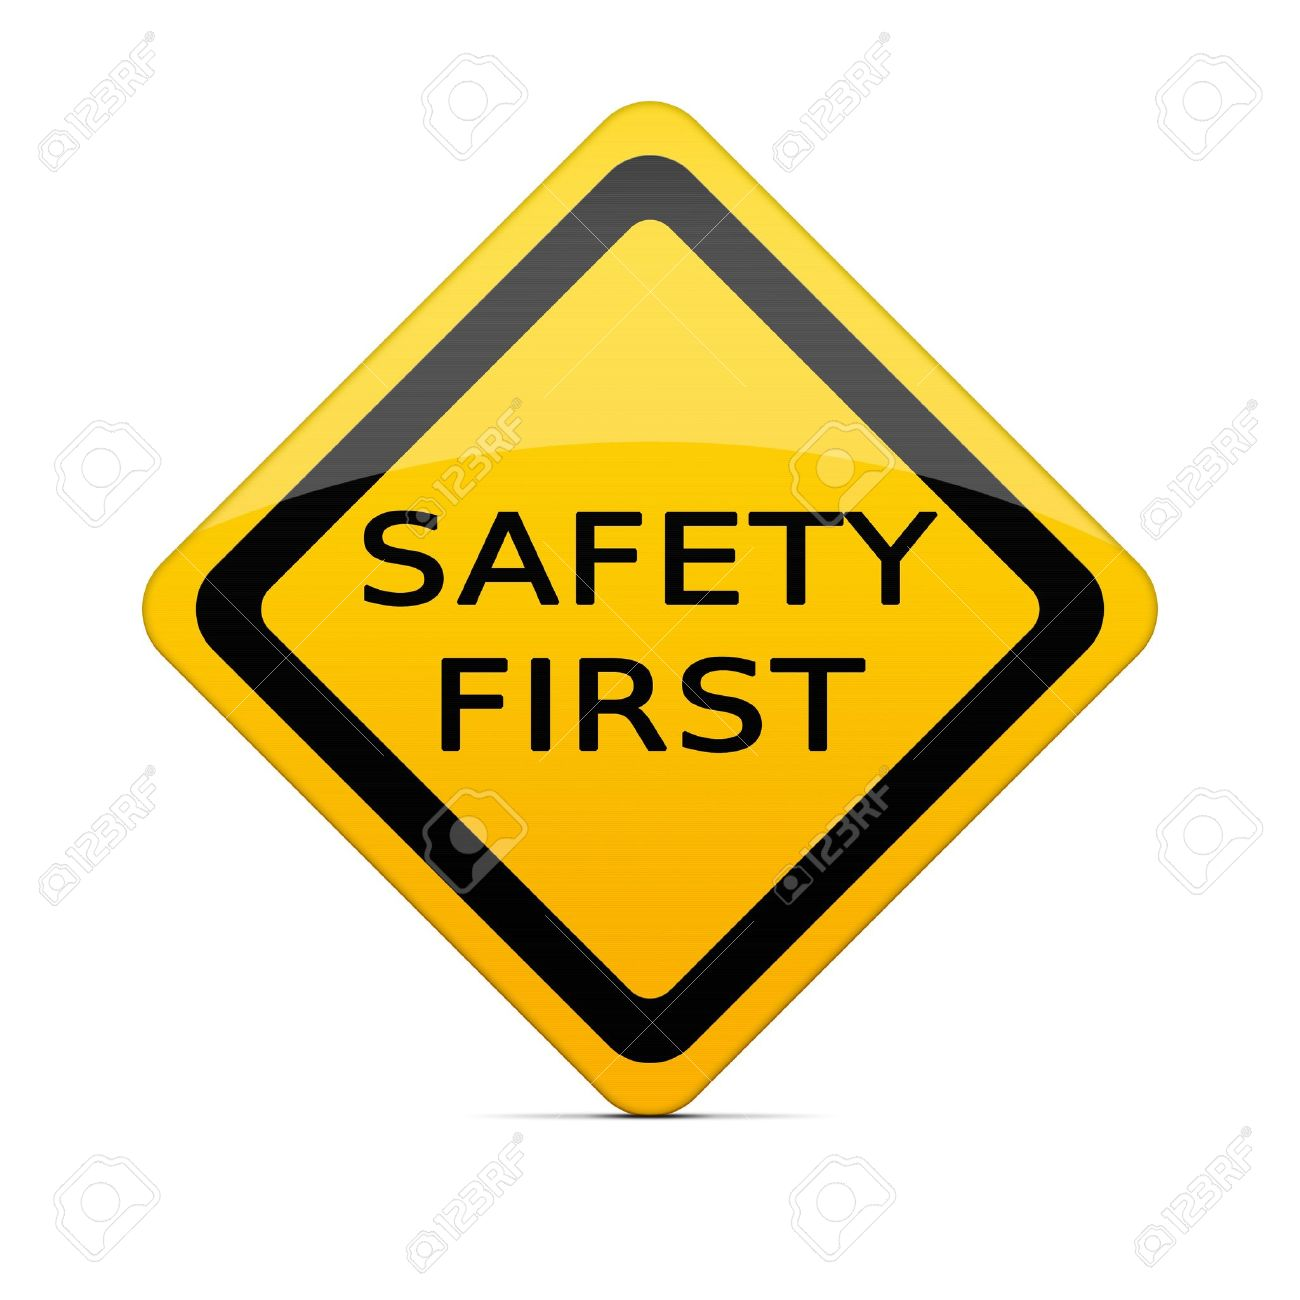 Health and safety clipart 9 » Clipart Station.